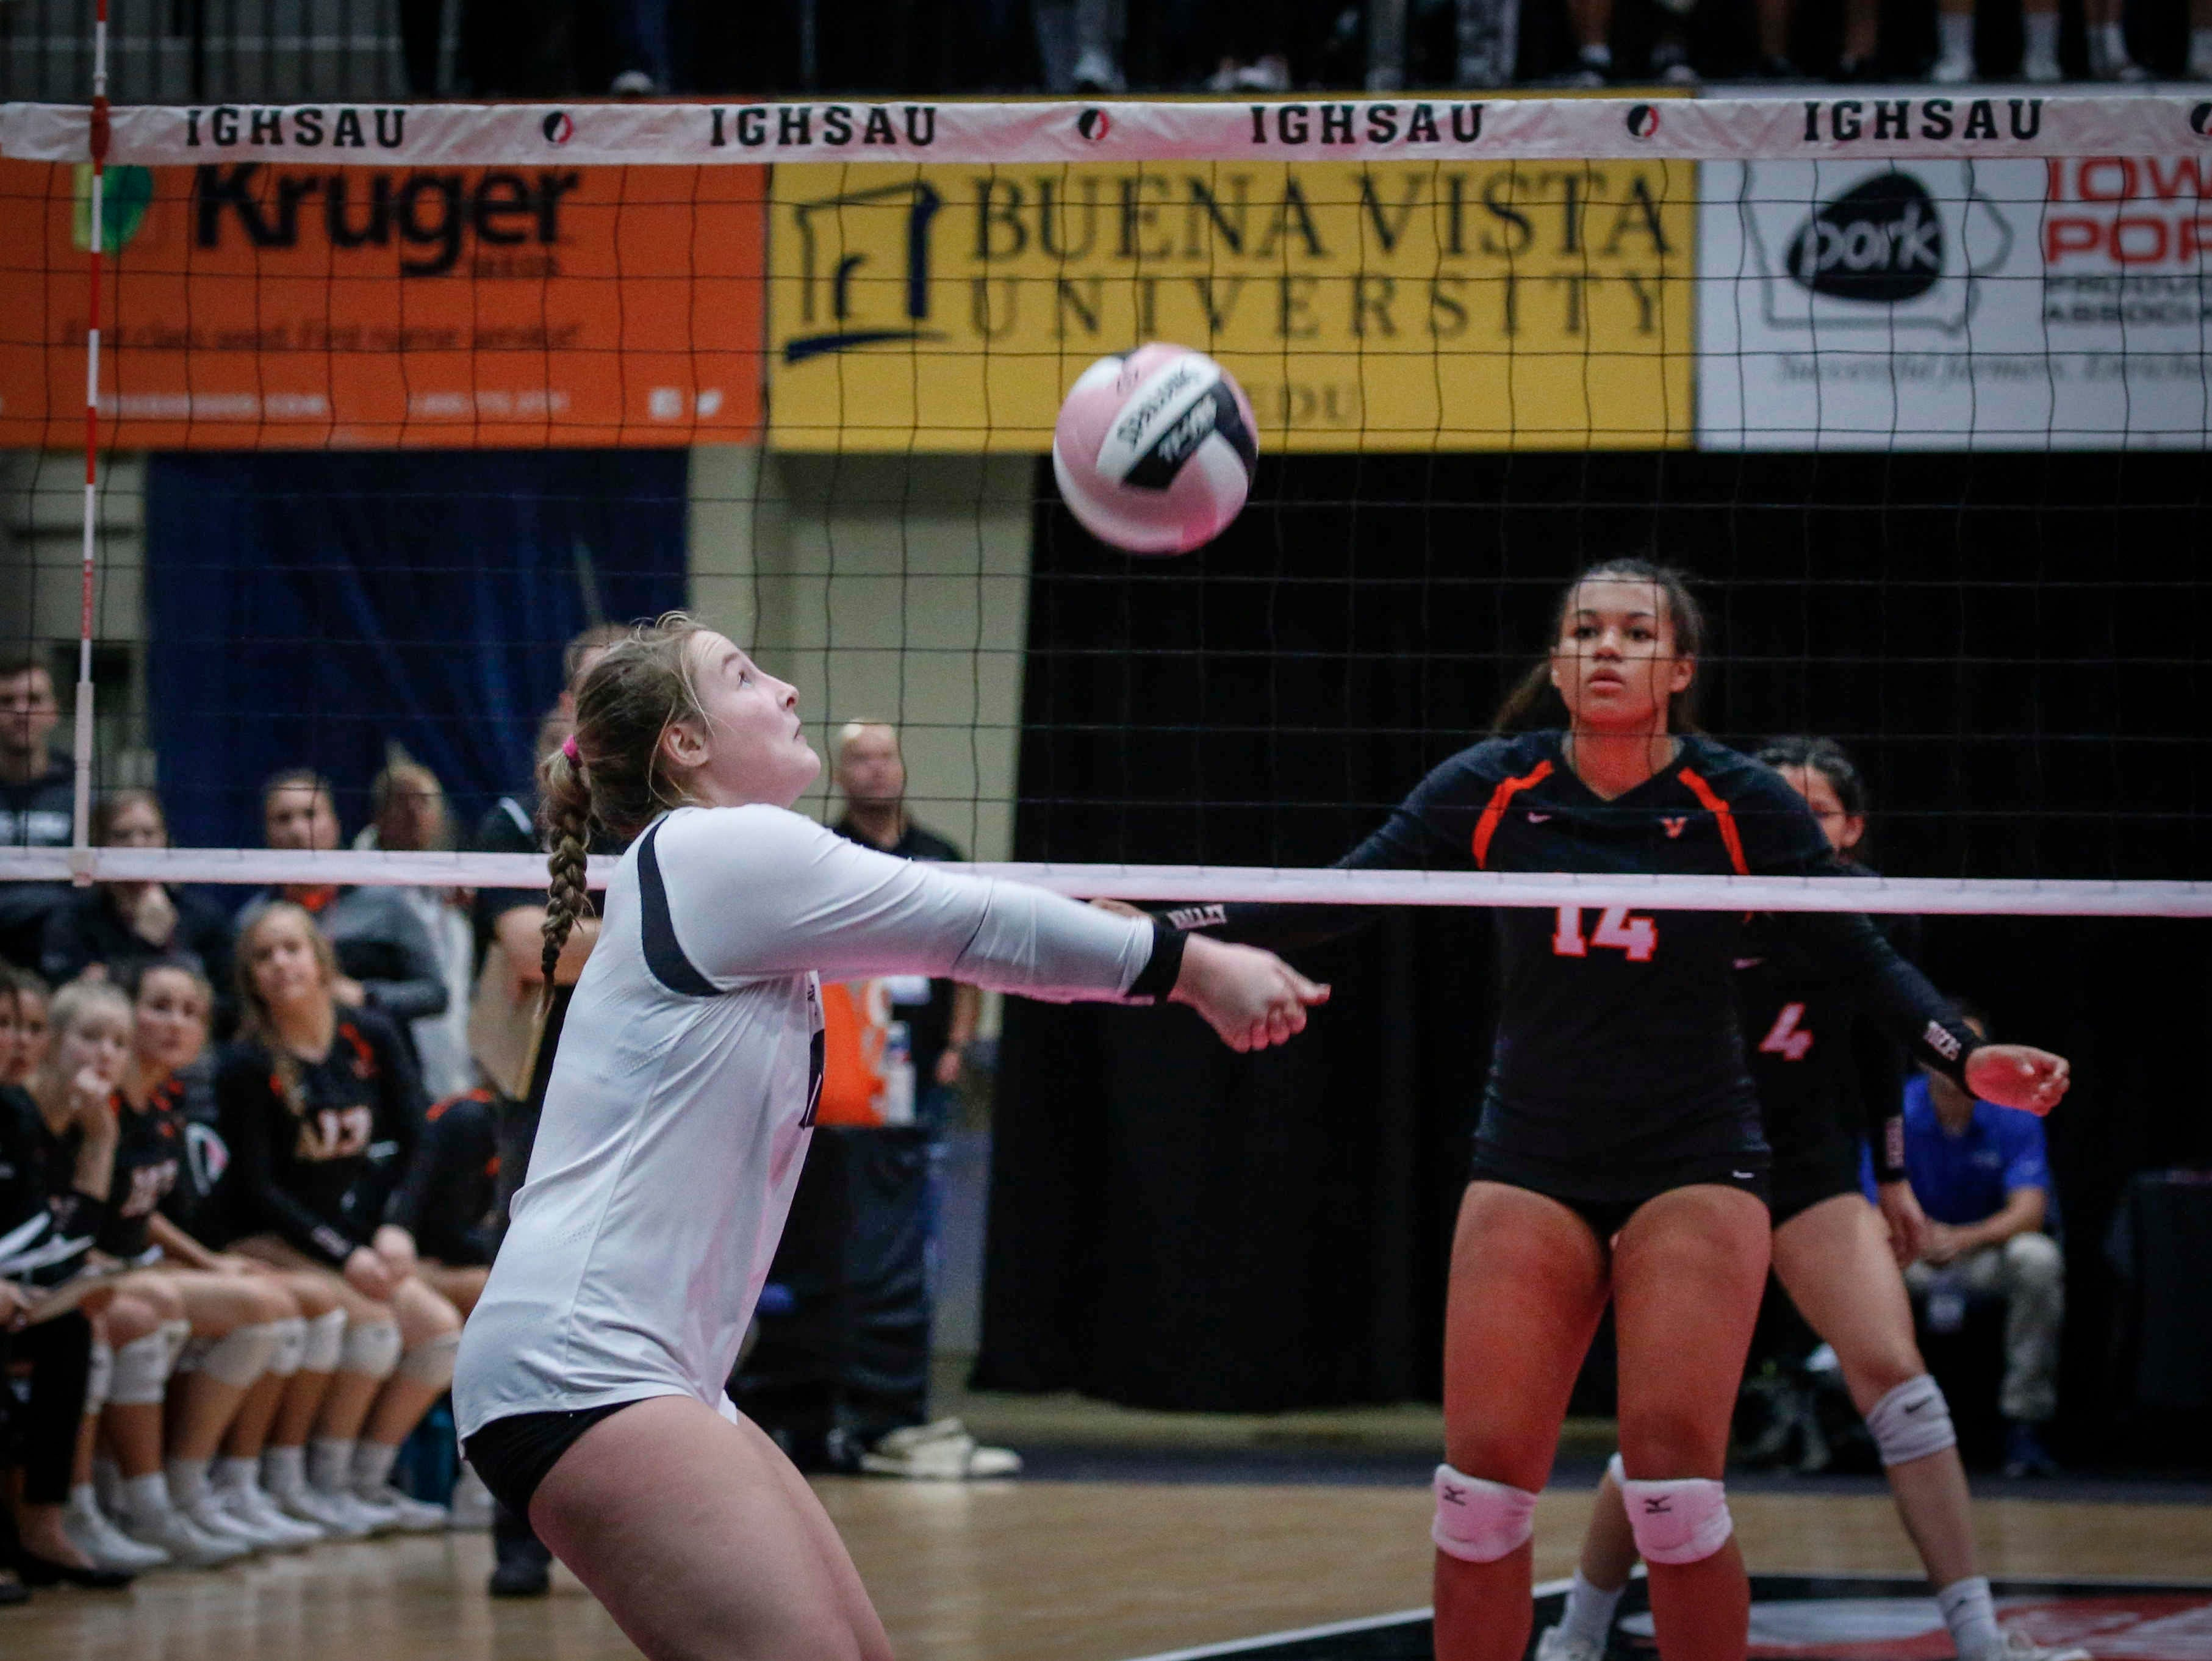 Ankeny Centennial's Josie Magner sets up a shot against Valley in Class 5A during the 2018 Iowa High School state volleyball tournament on Thursday, Nov. 8, 2018, in Cedar Rapids.